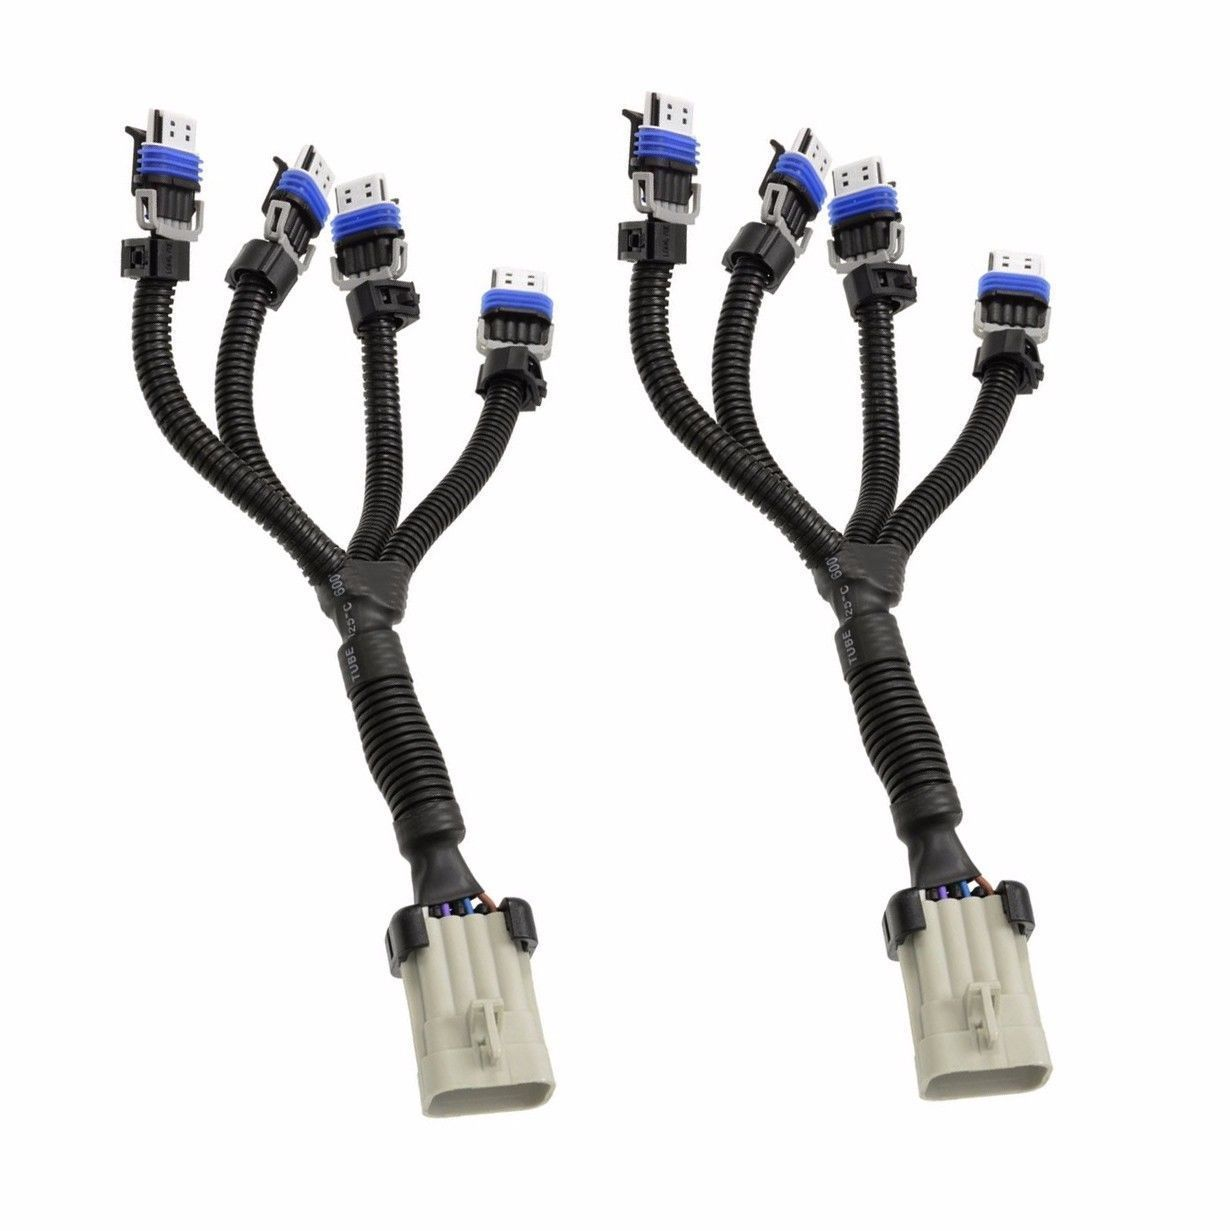 Ls2 Ls7 Lq4 Lq9 Gm Ignition Coil Harness Set And Similar Items Wiring S L1600